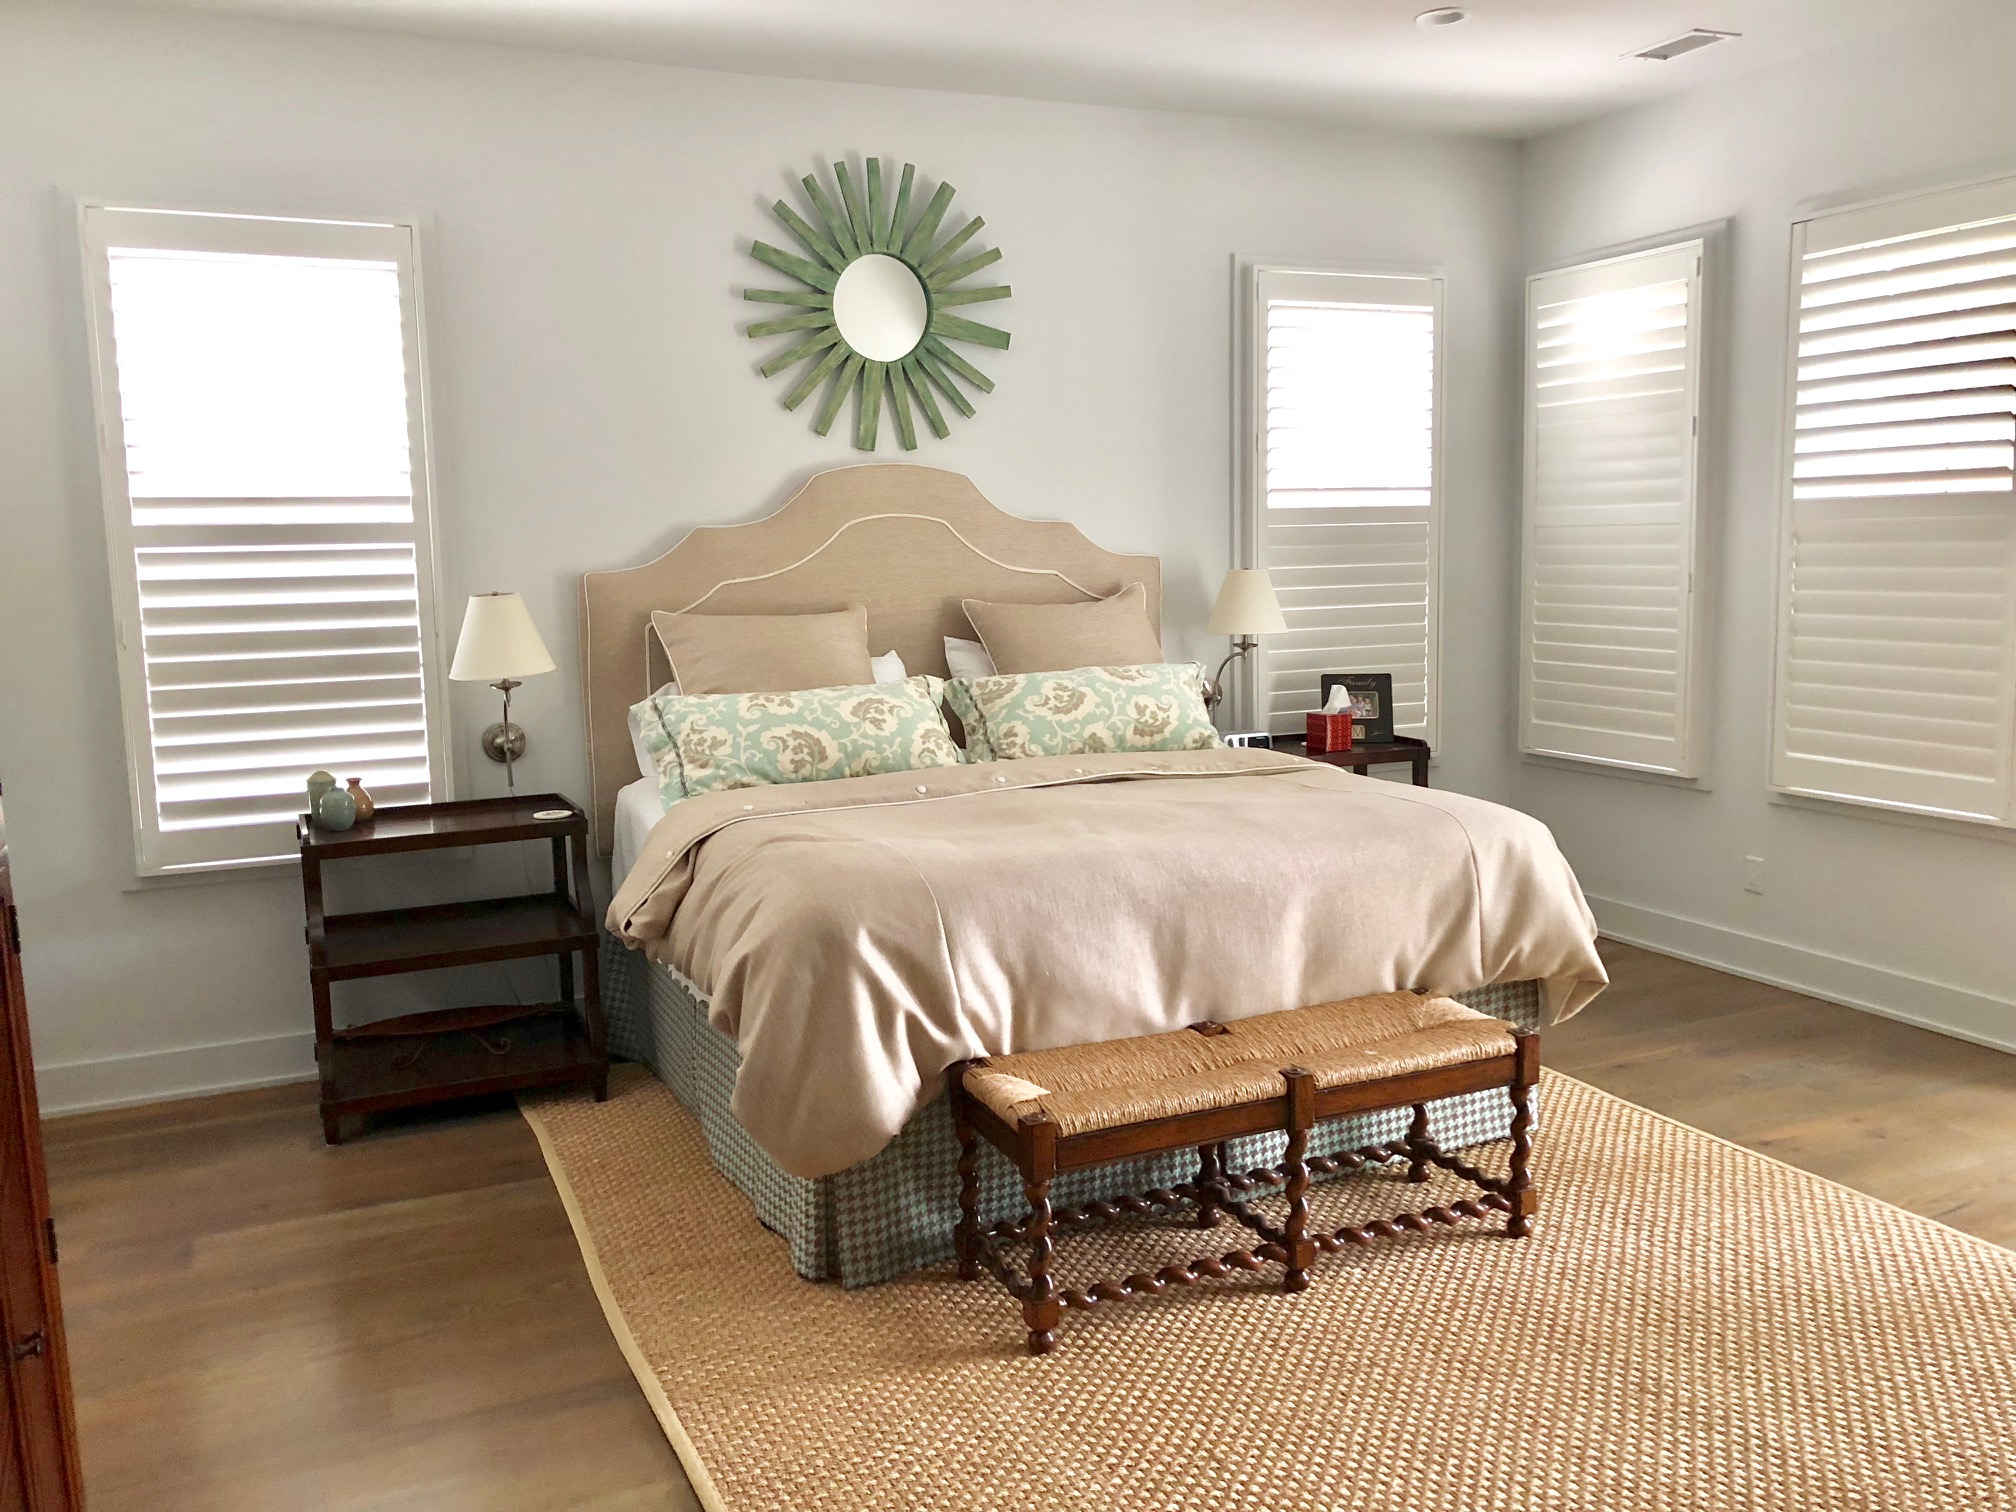 The 1st floor master has a king bed and large walk-in closet.